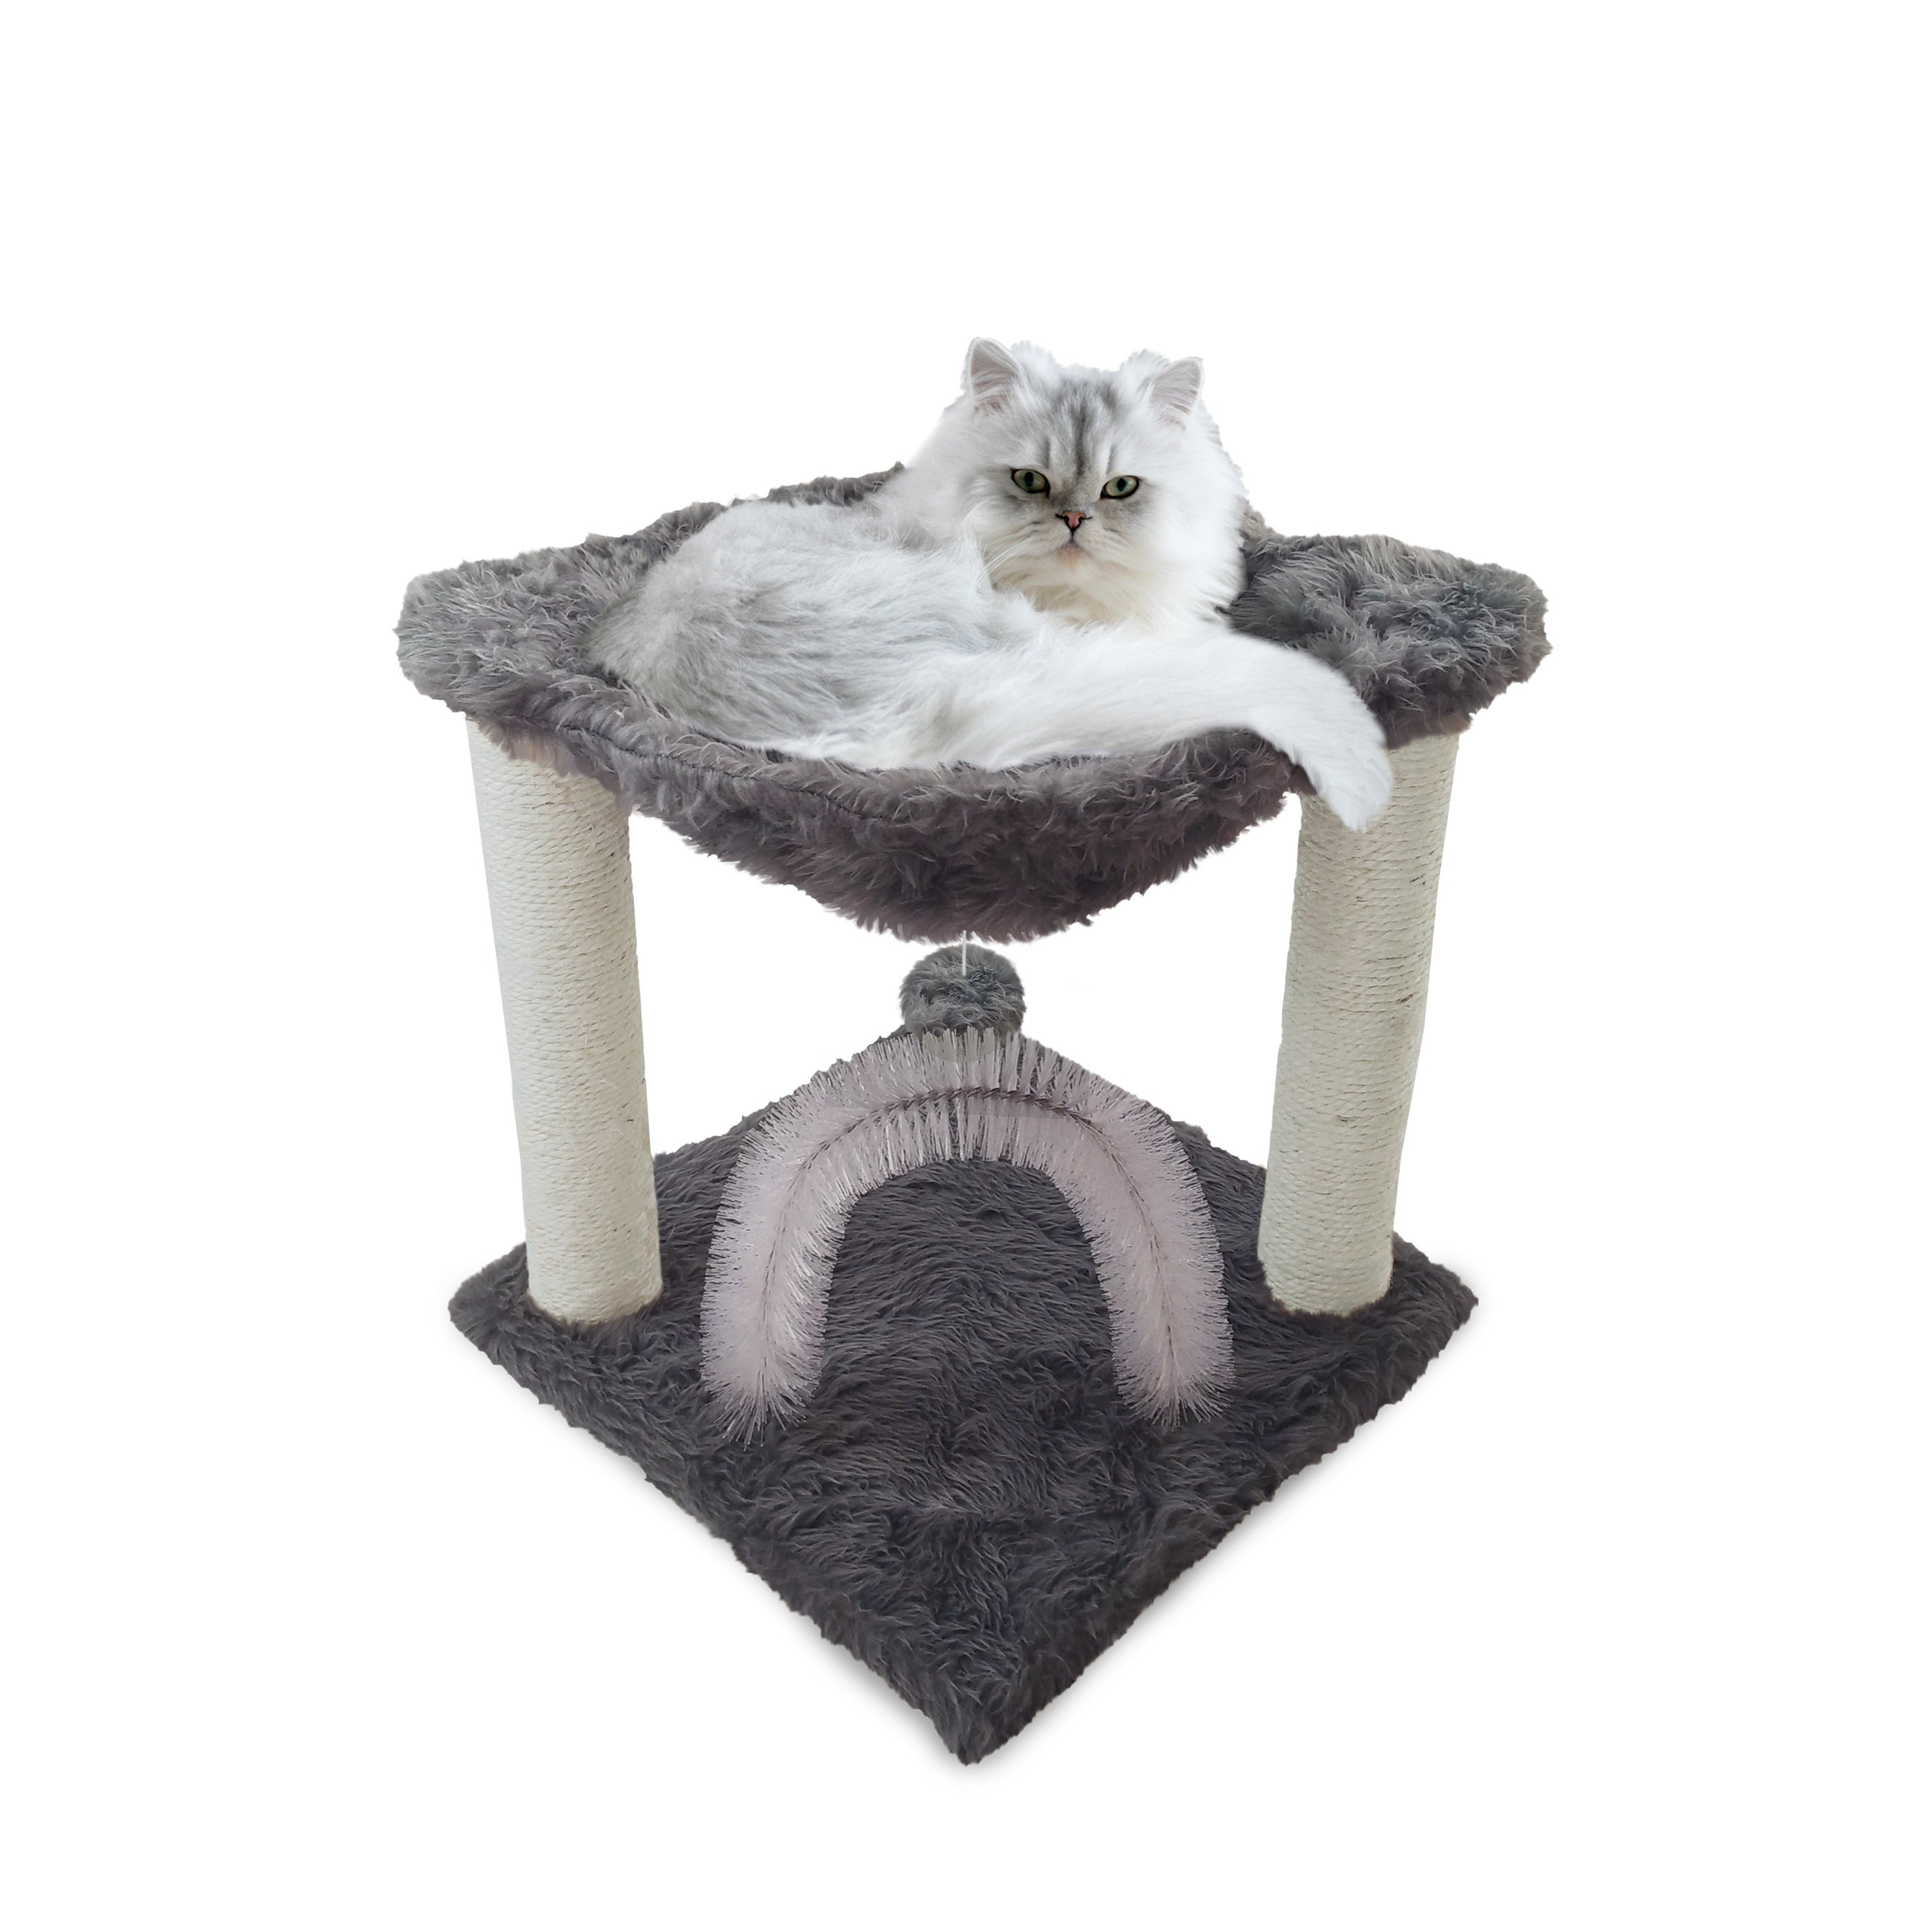 furhaven tiger tough plush hammock cat bed and grooming station   free shipping on orders over  45   overstock     20161022 furhaven tiger tough plush hammock cat bed and grooming station      rh   overstock